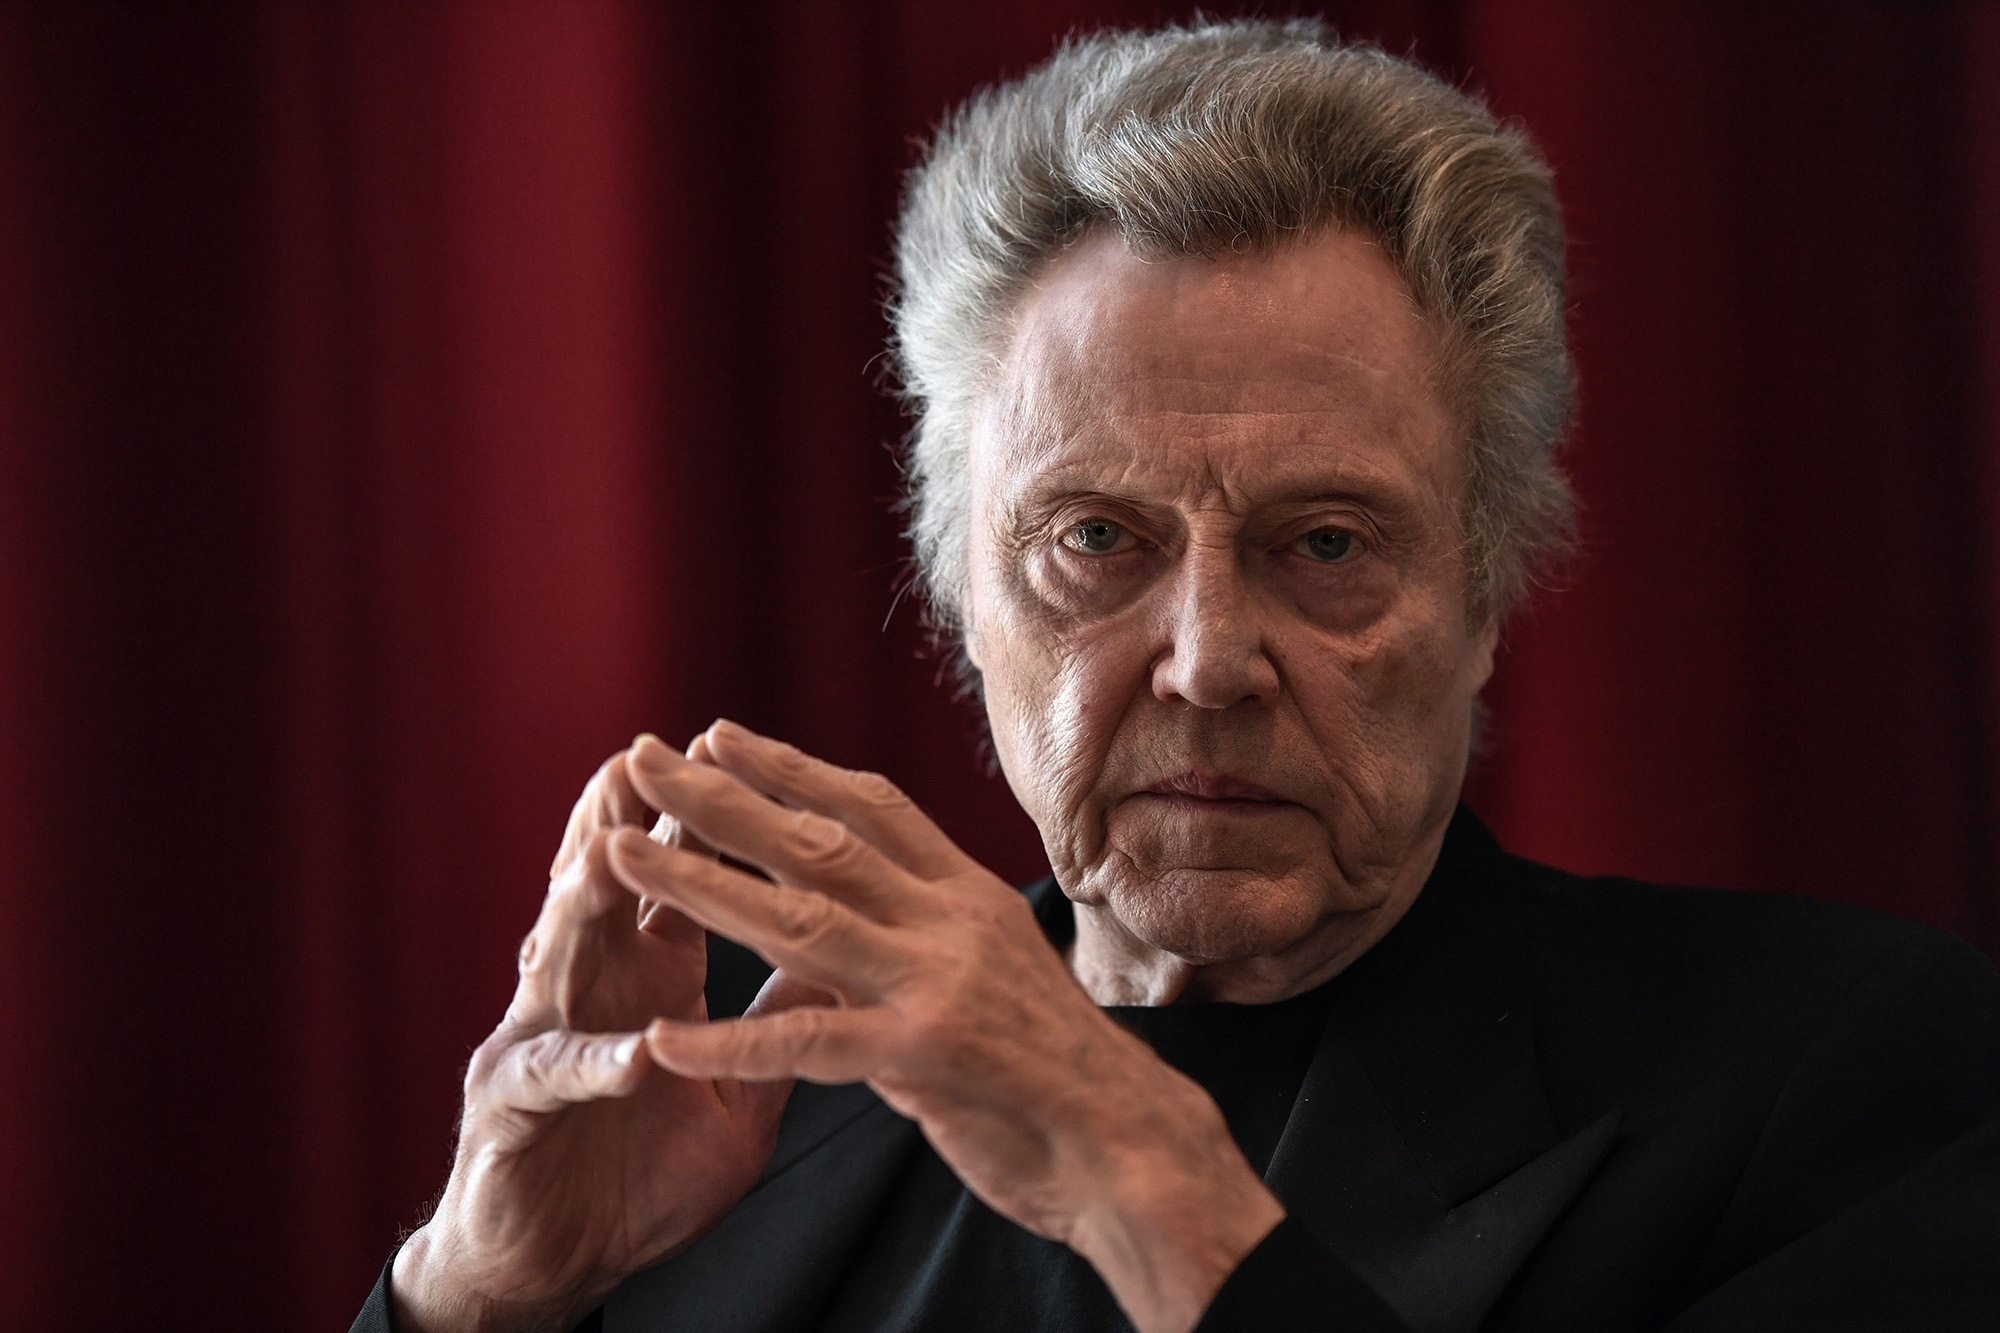 Christopher Walken has never owned cellphone or computer